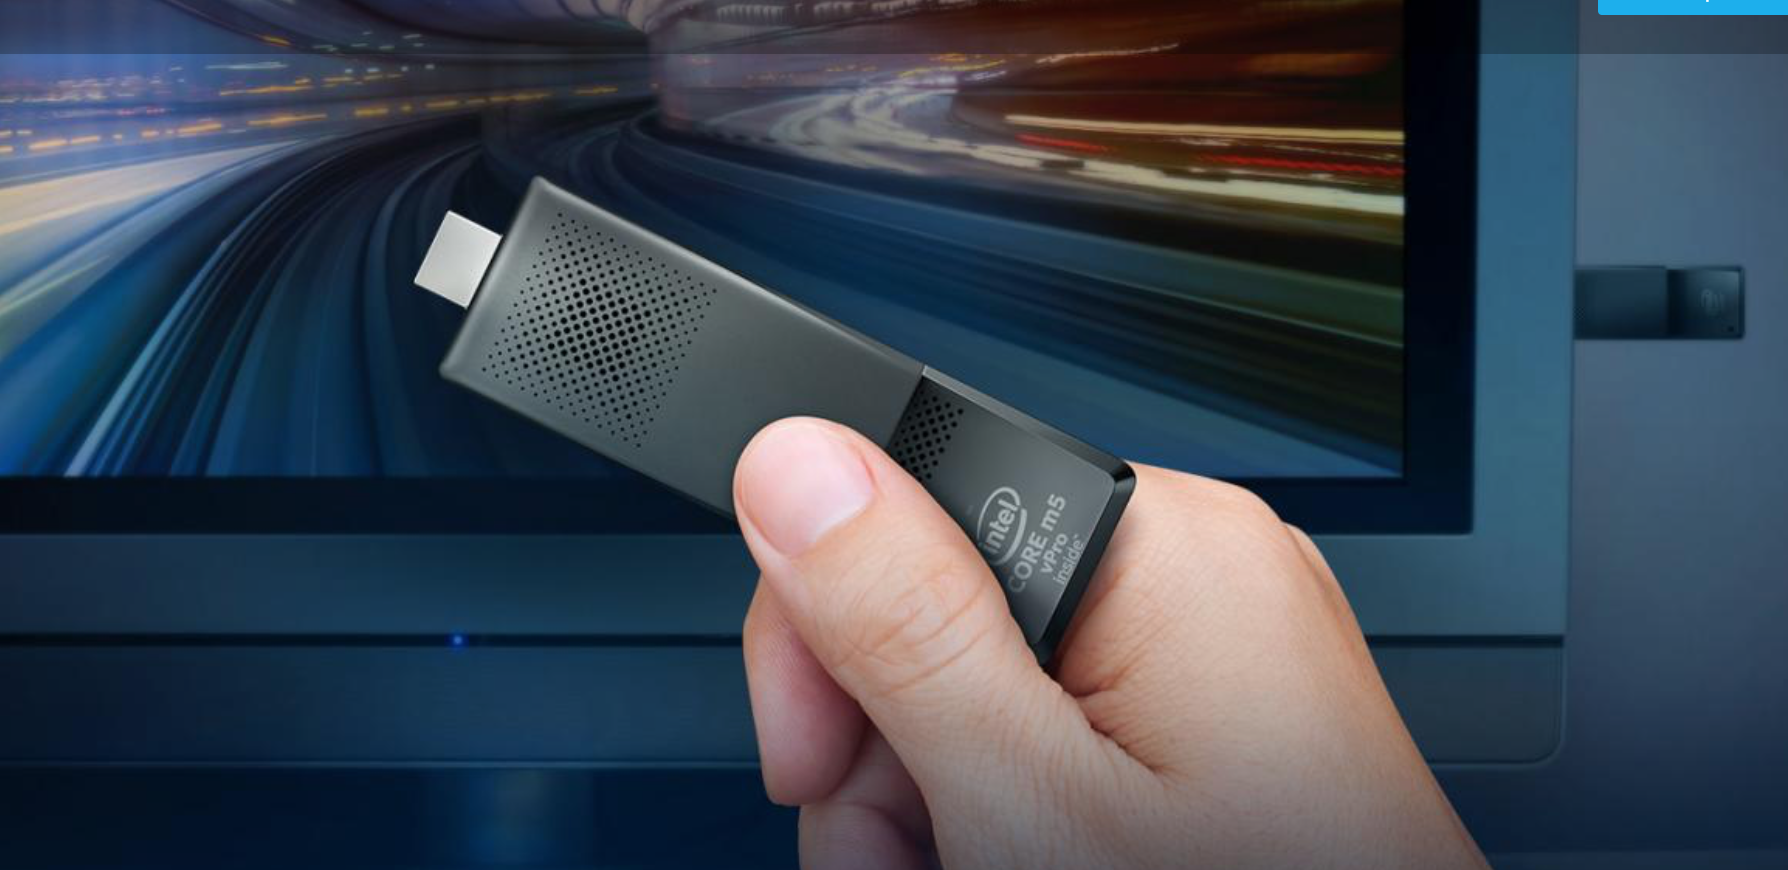 It Looks Like Intel Made a PC-on-a-Stick That Doesn't Suck